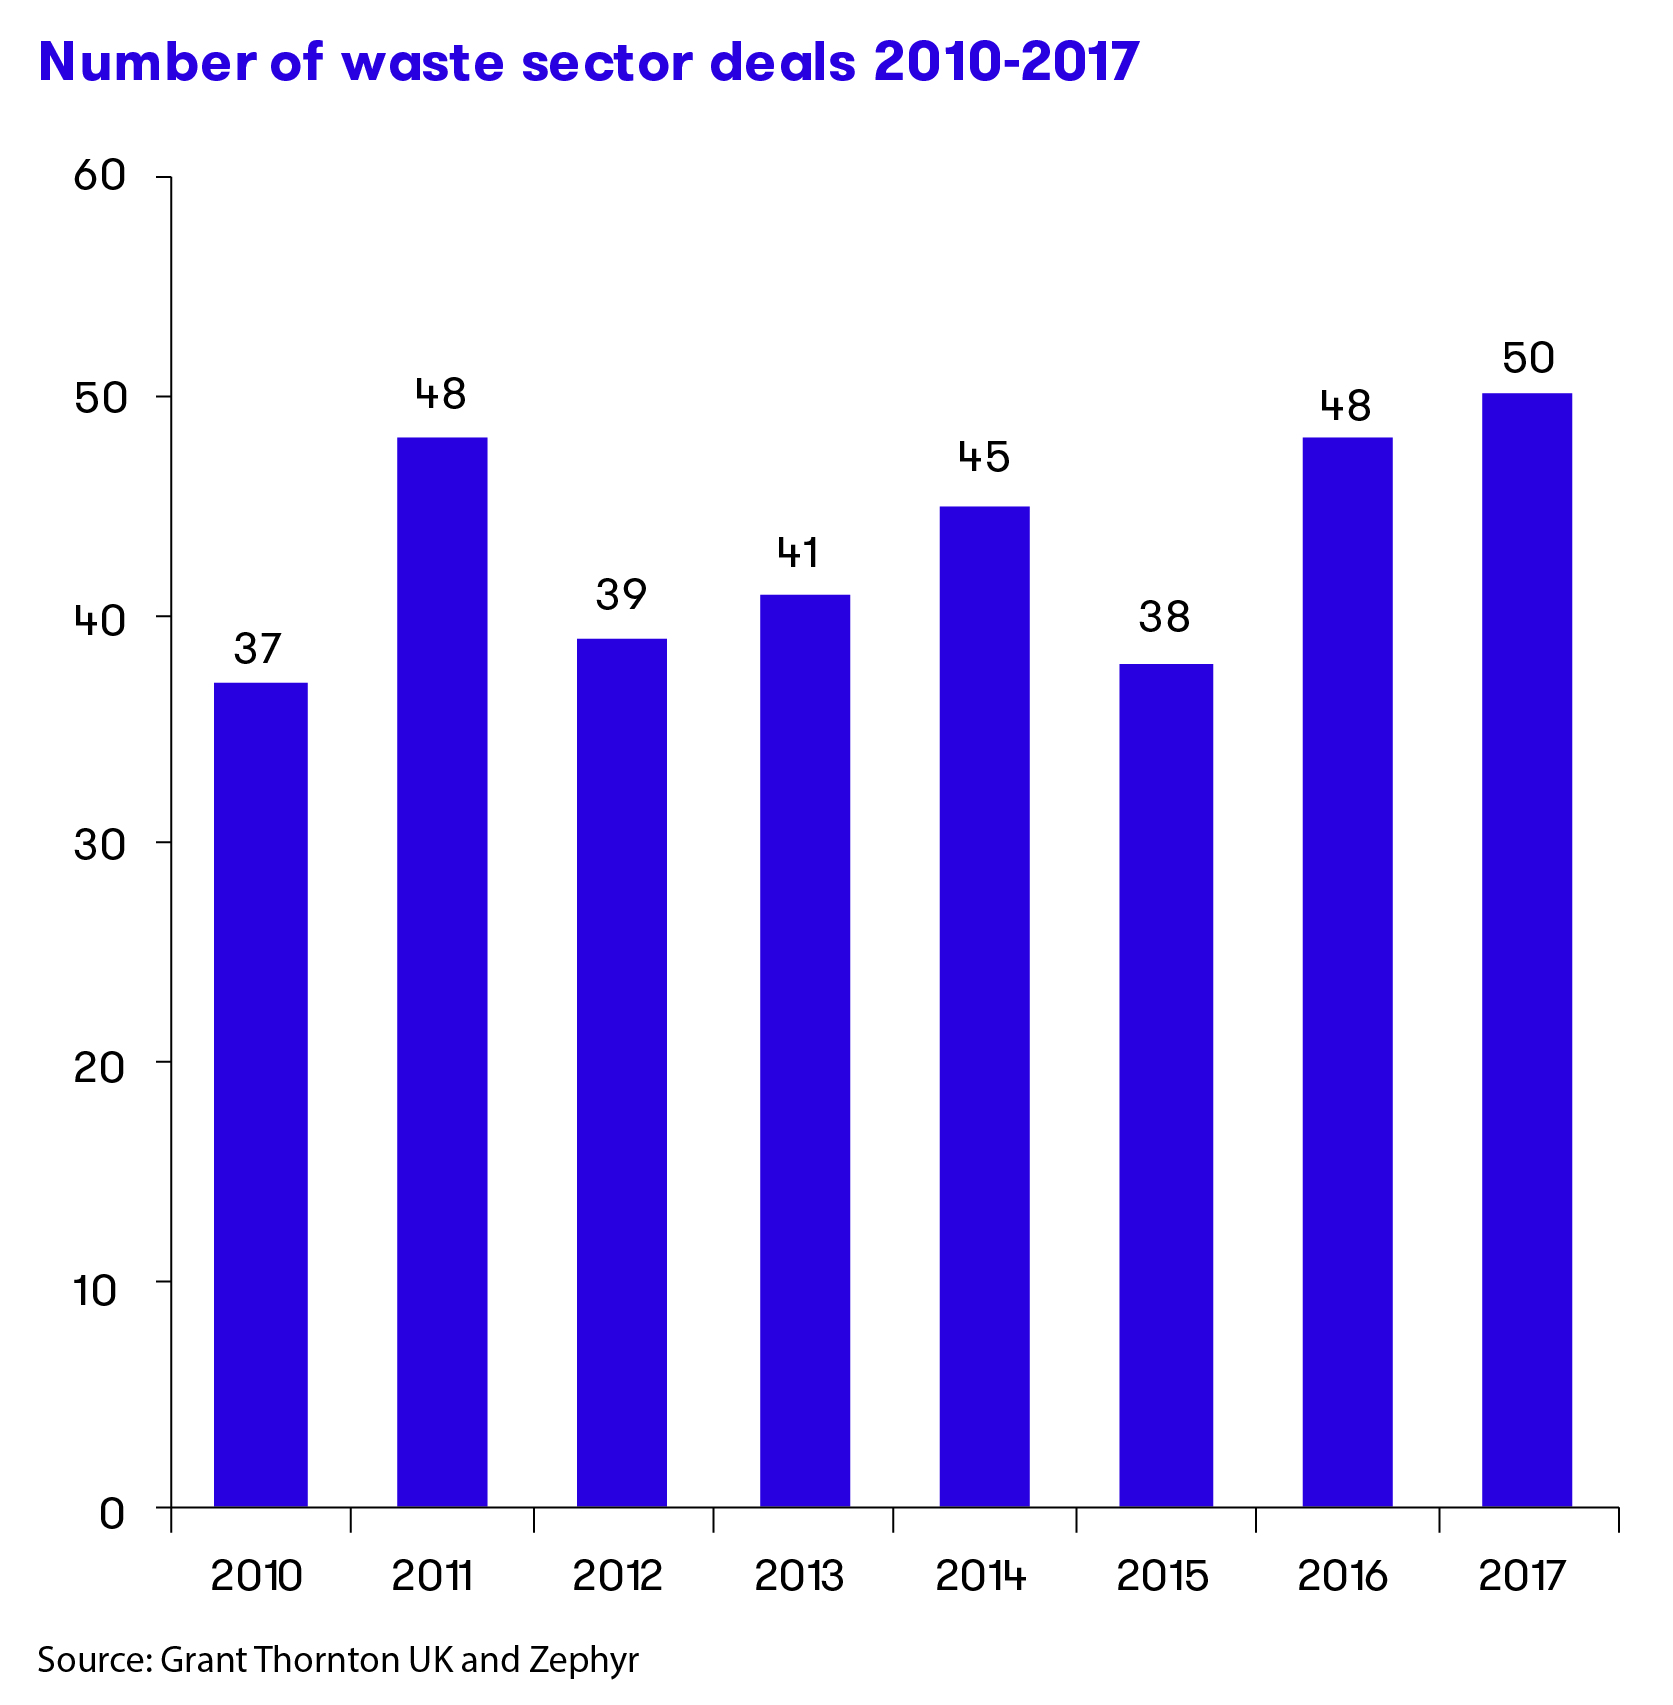 Number of waste sector deals 2010-2017